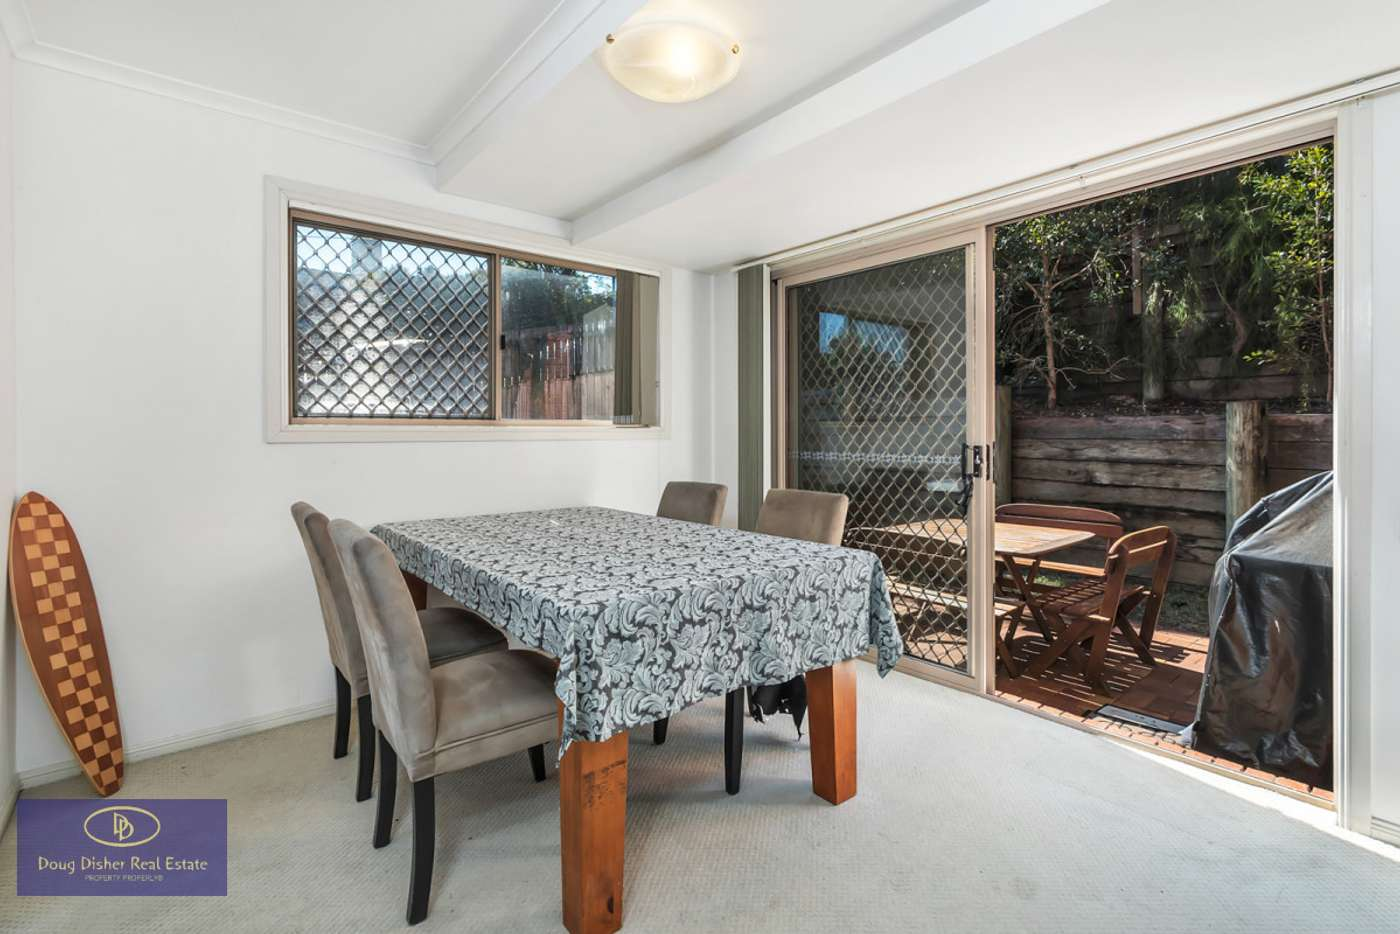 Fifth view of Homely townhouse listing, 3/11 Armadale Street, St Lucia QLD 4067